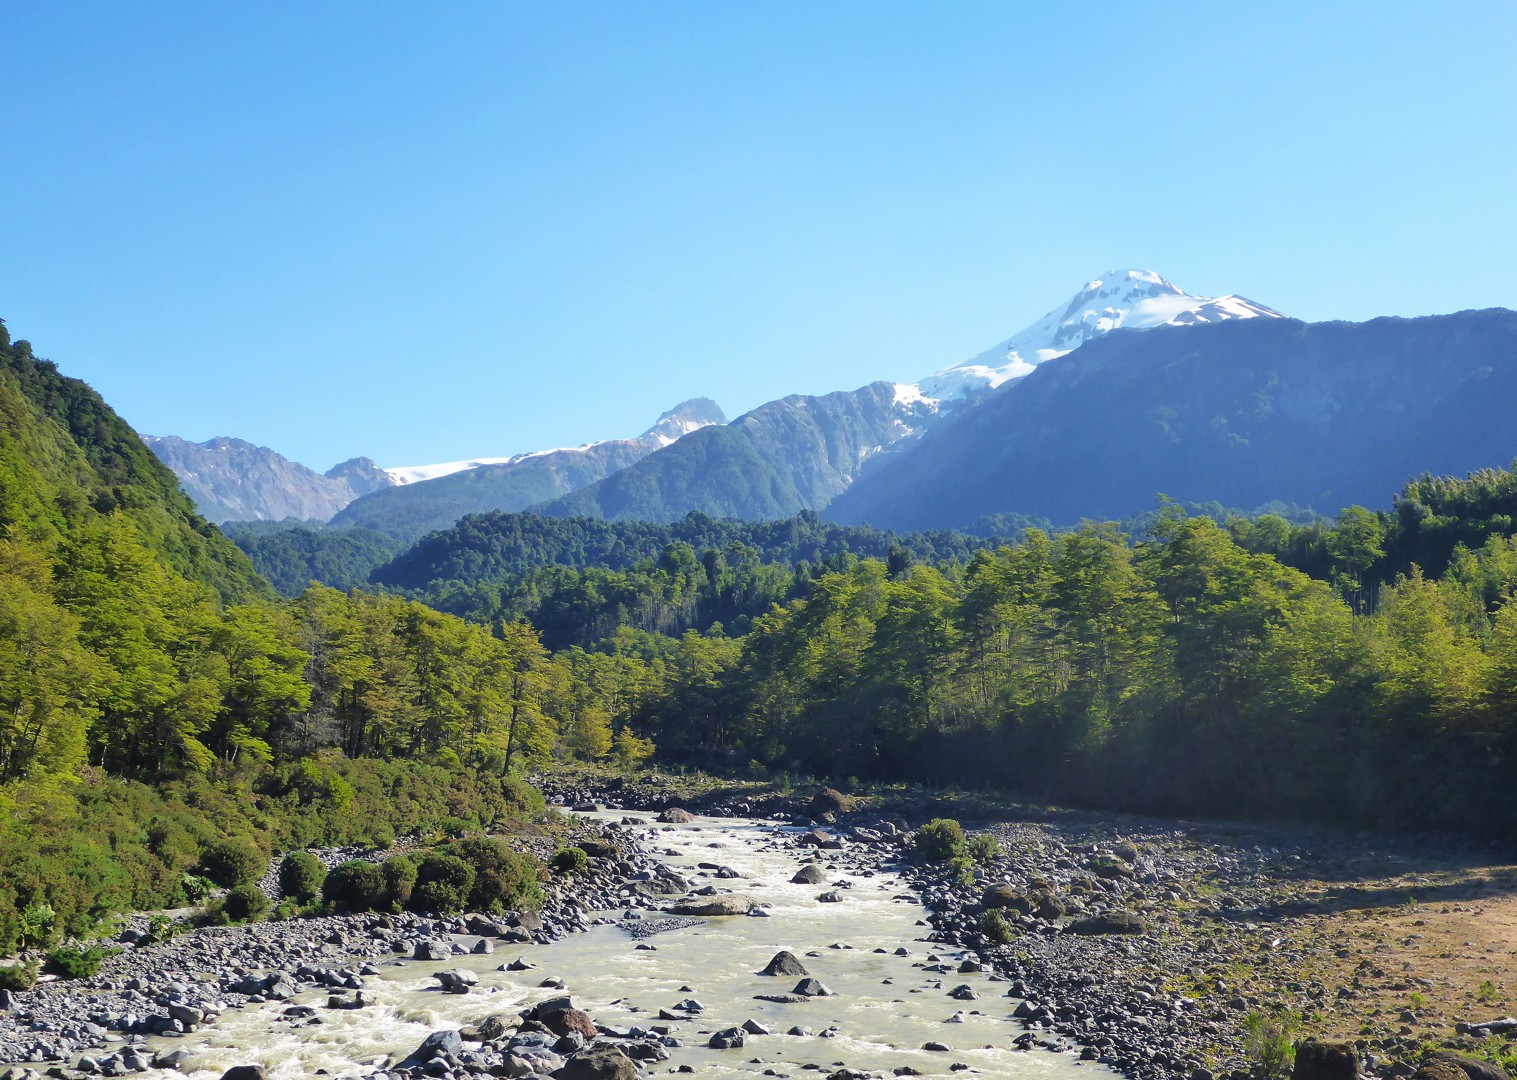 road-cycling-holiday-in-chile-and-argentina-with-skedaddle-san-martin-to-villa-angostura.jpg - Chile and Argentina - Lake District Road Explorer - Road Cycling